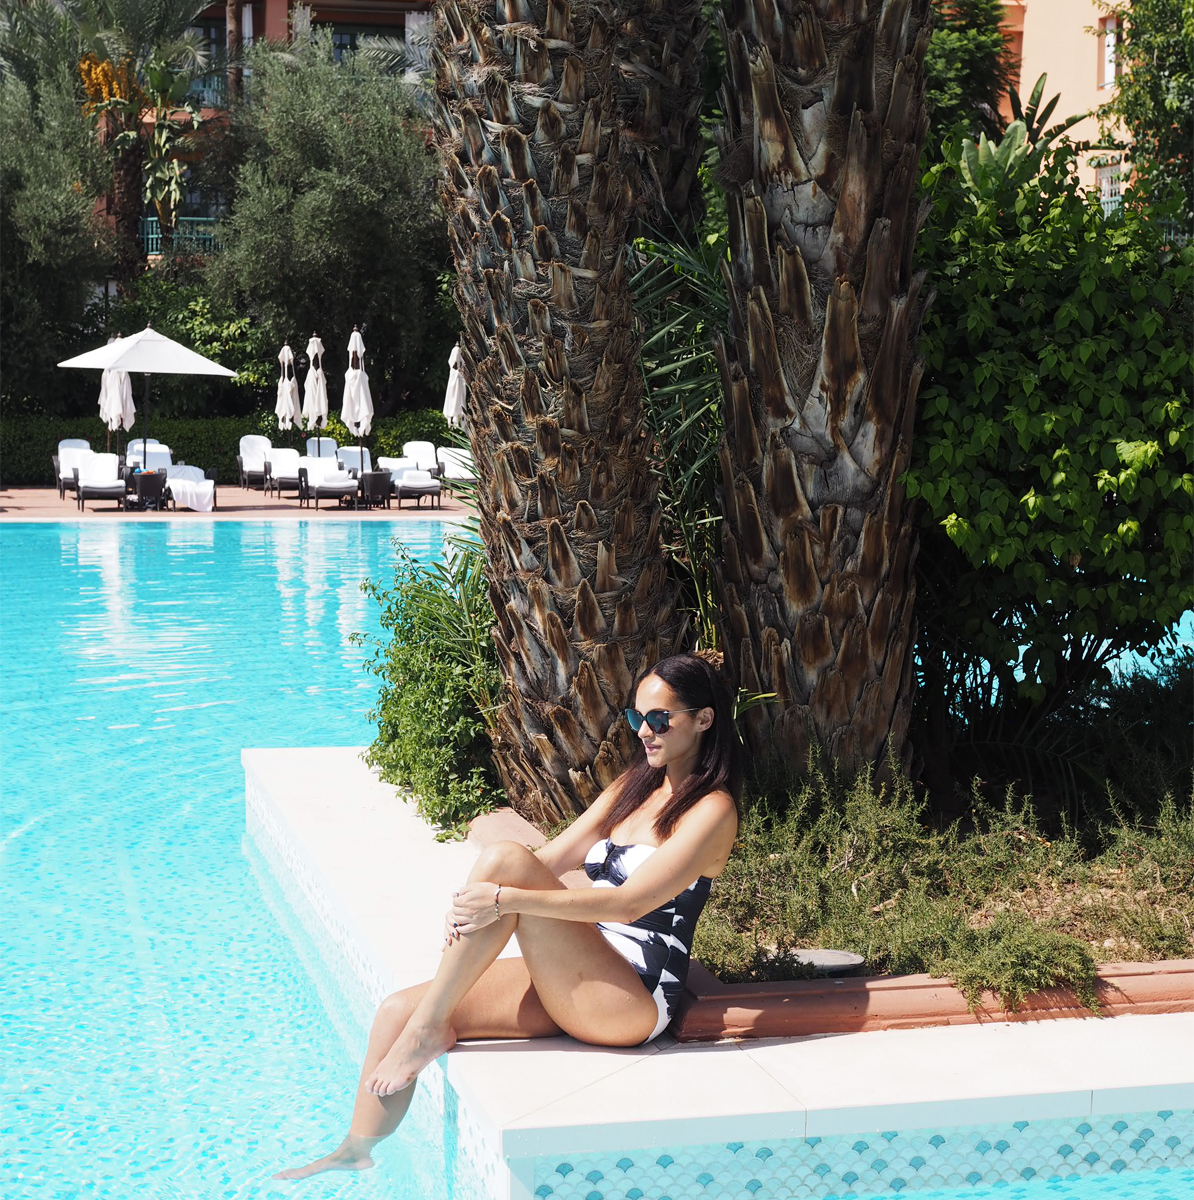 Poolside at La Mamounia, Marrakech – Eres paint swimsuit